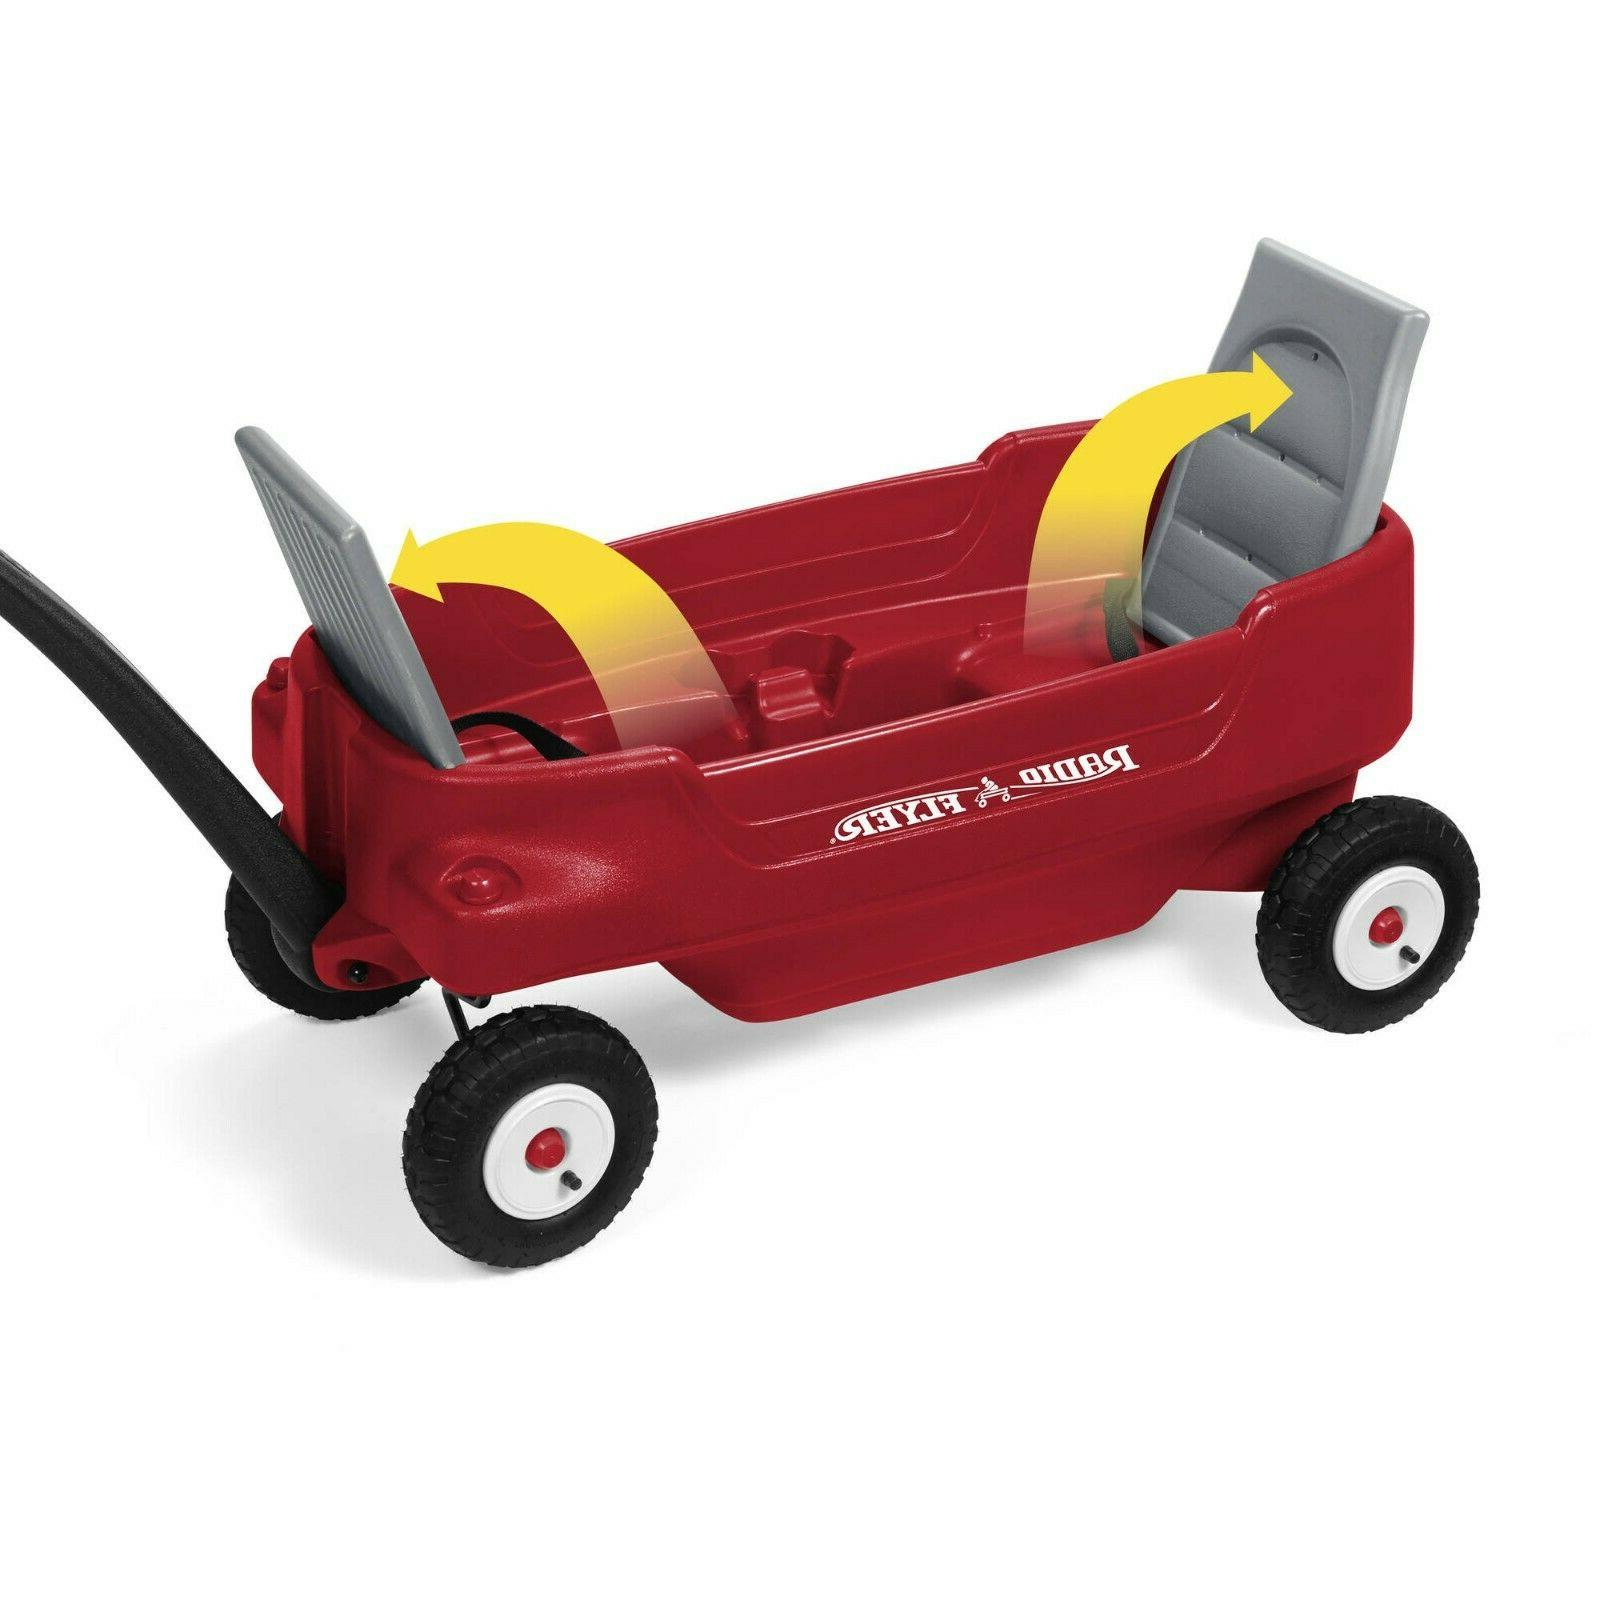 Radio Flyer, Deluxe Pathfinder Wagon with Air All